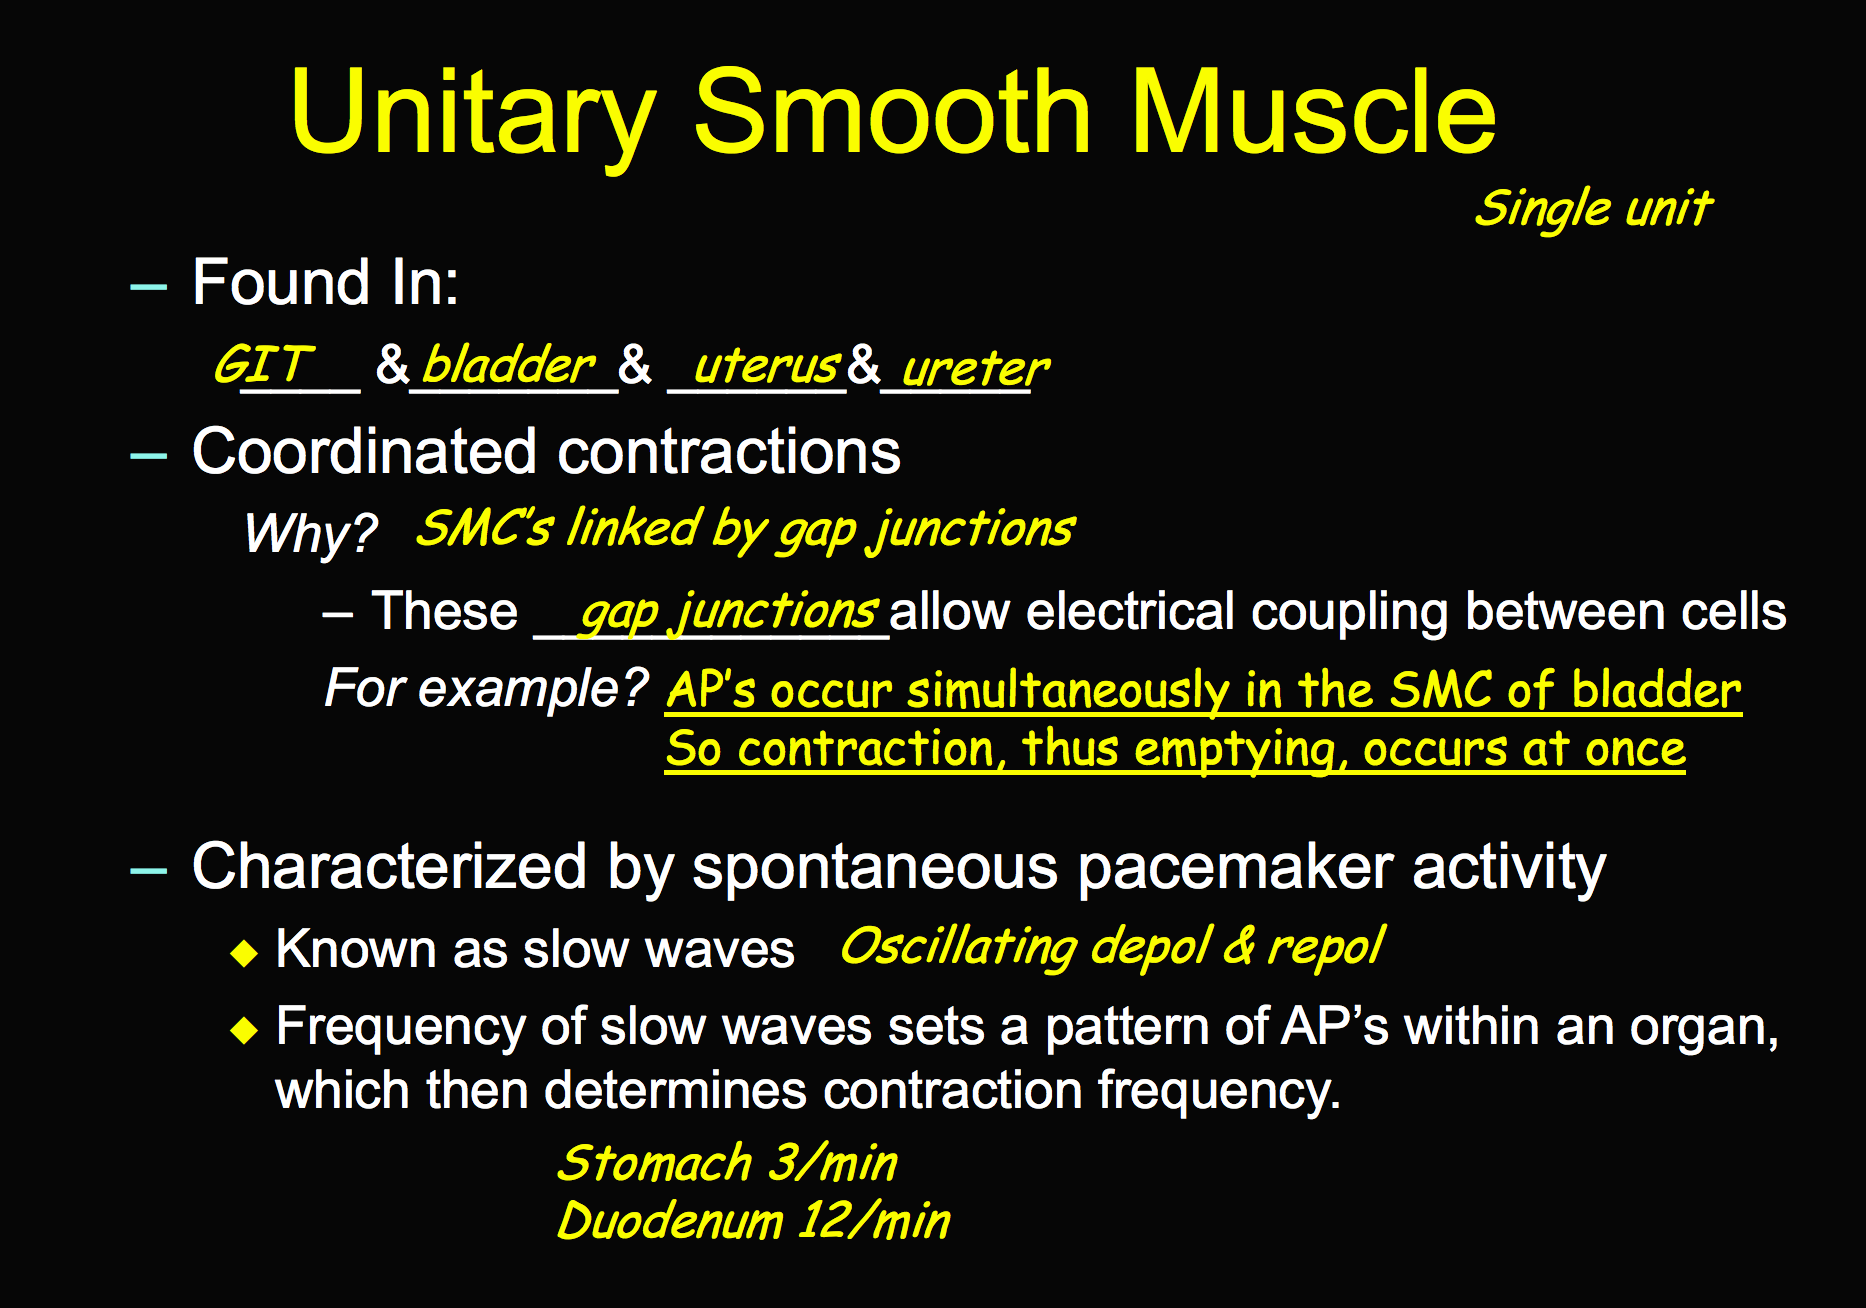 Ccf Physiology L14 Smooth Muscle Flashcards Memorang